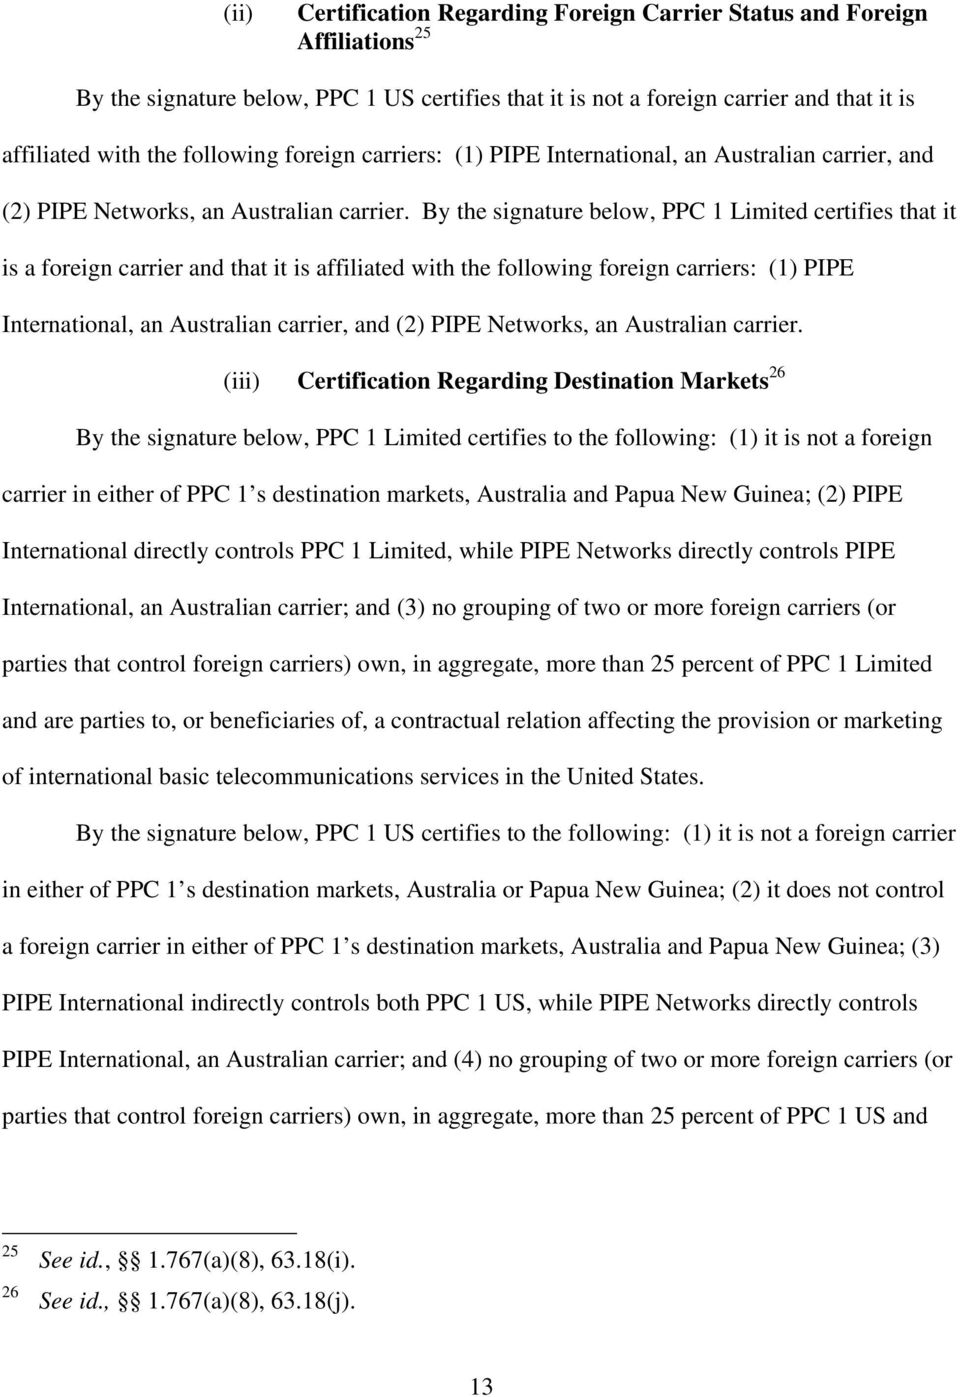 By the signature below, PPC 1 Limited certifies that it is a foreign carrier and that it is affiliated with the  (iii) Certification Regarding Destination Markets 26 By the signature below, PPC 1